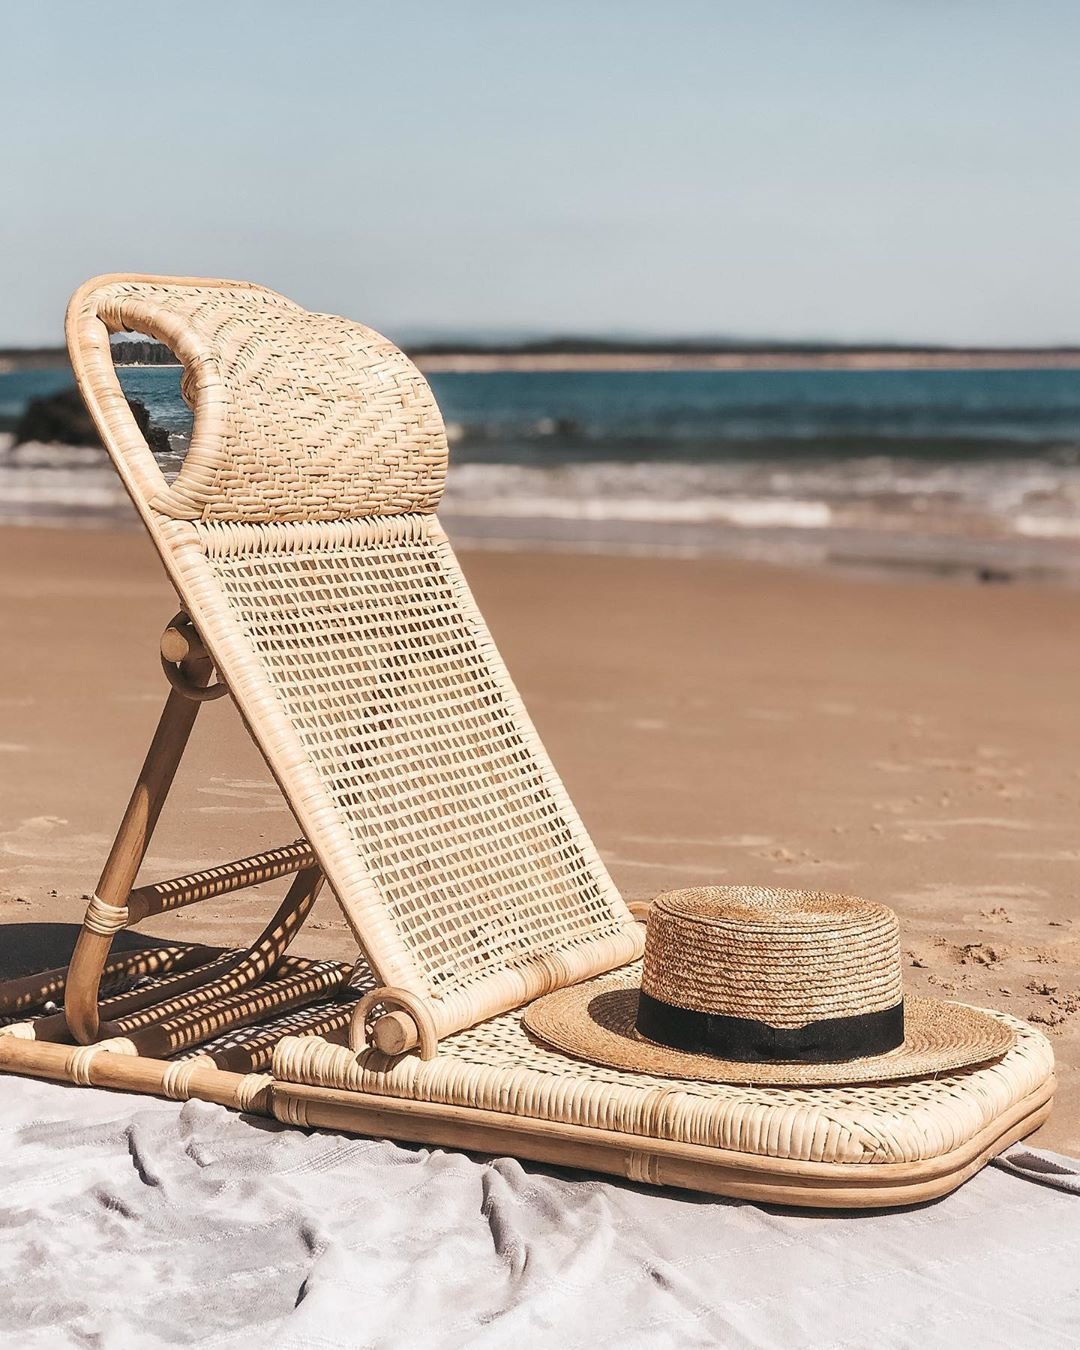 Sol Lounging Fridays Were Made For This With Land And Sand Essentials Beach Beach Umbrella Rattan Beach Chair